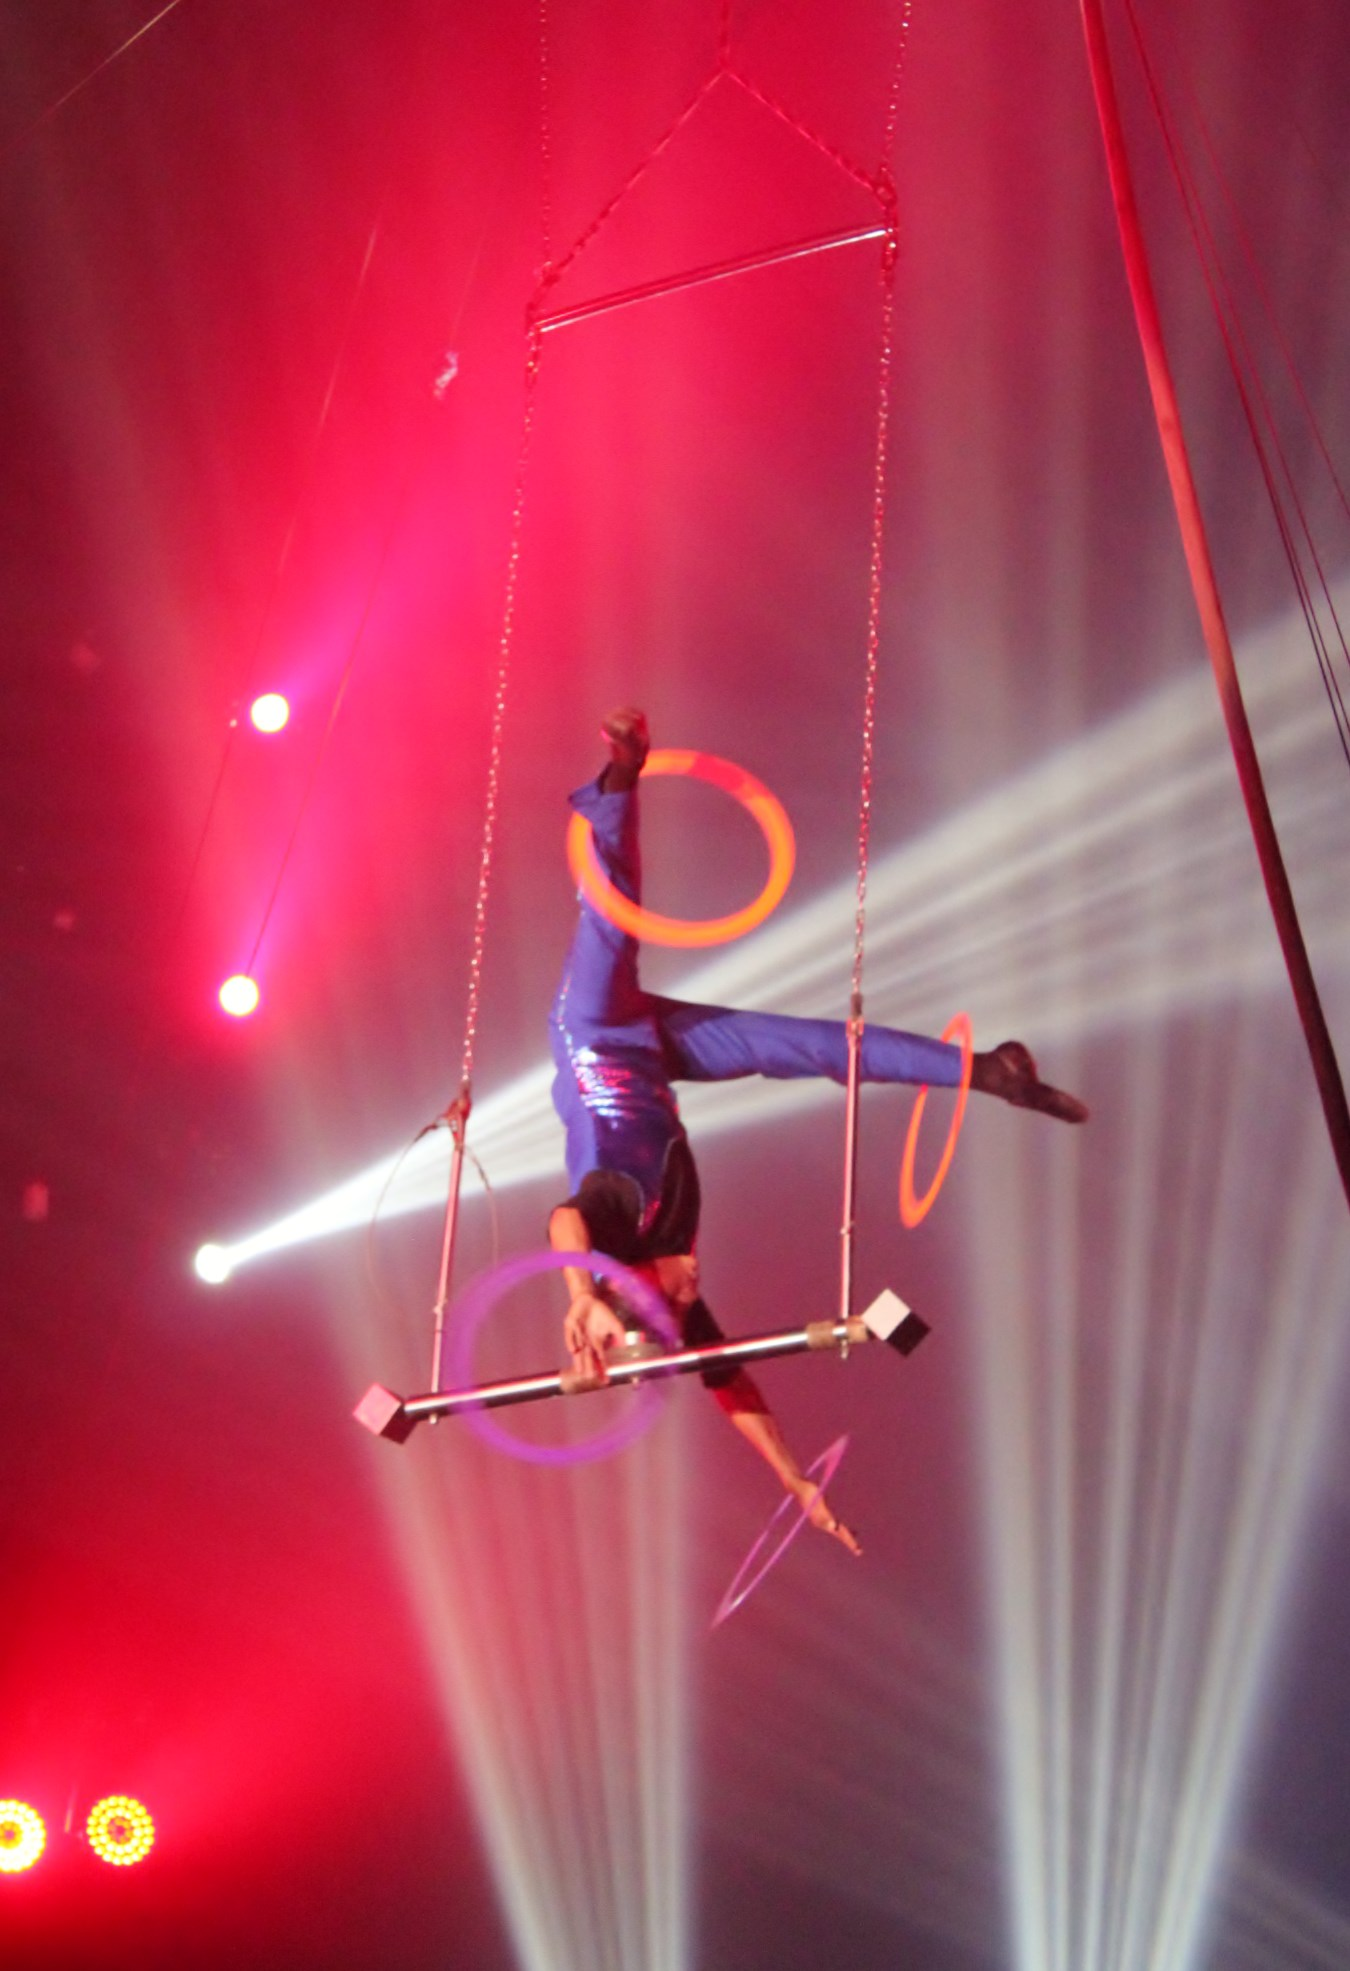 Aerial-Juggler-1 When the Circus Came to Boquete Boquete Panama The Expat Life